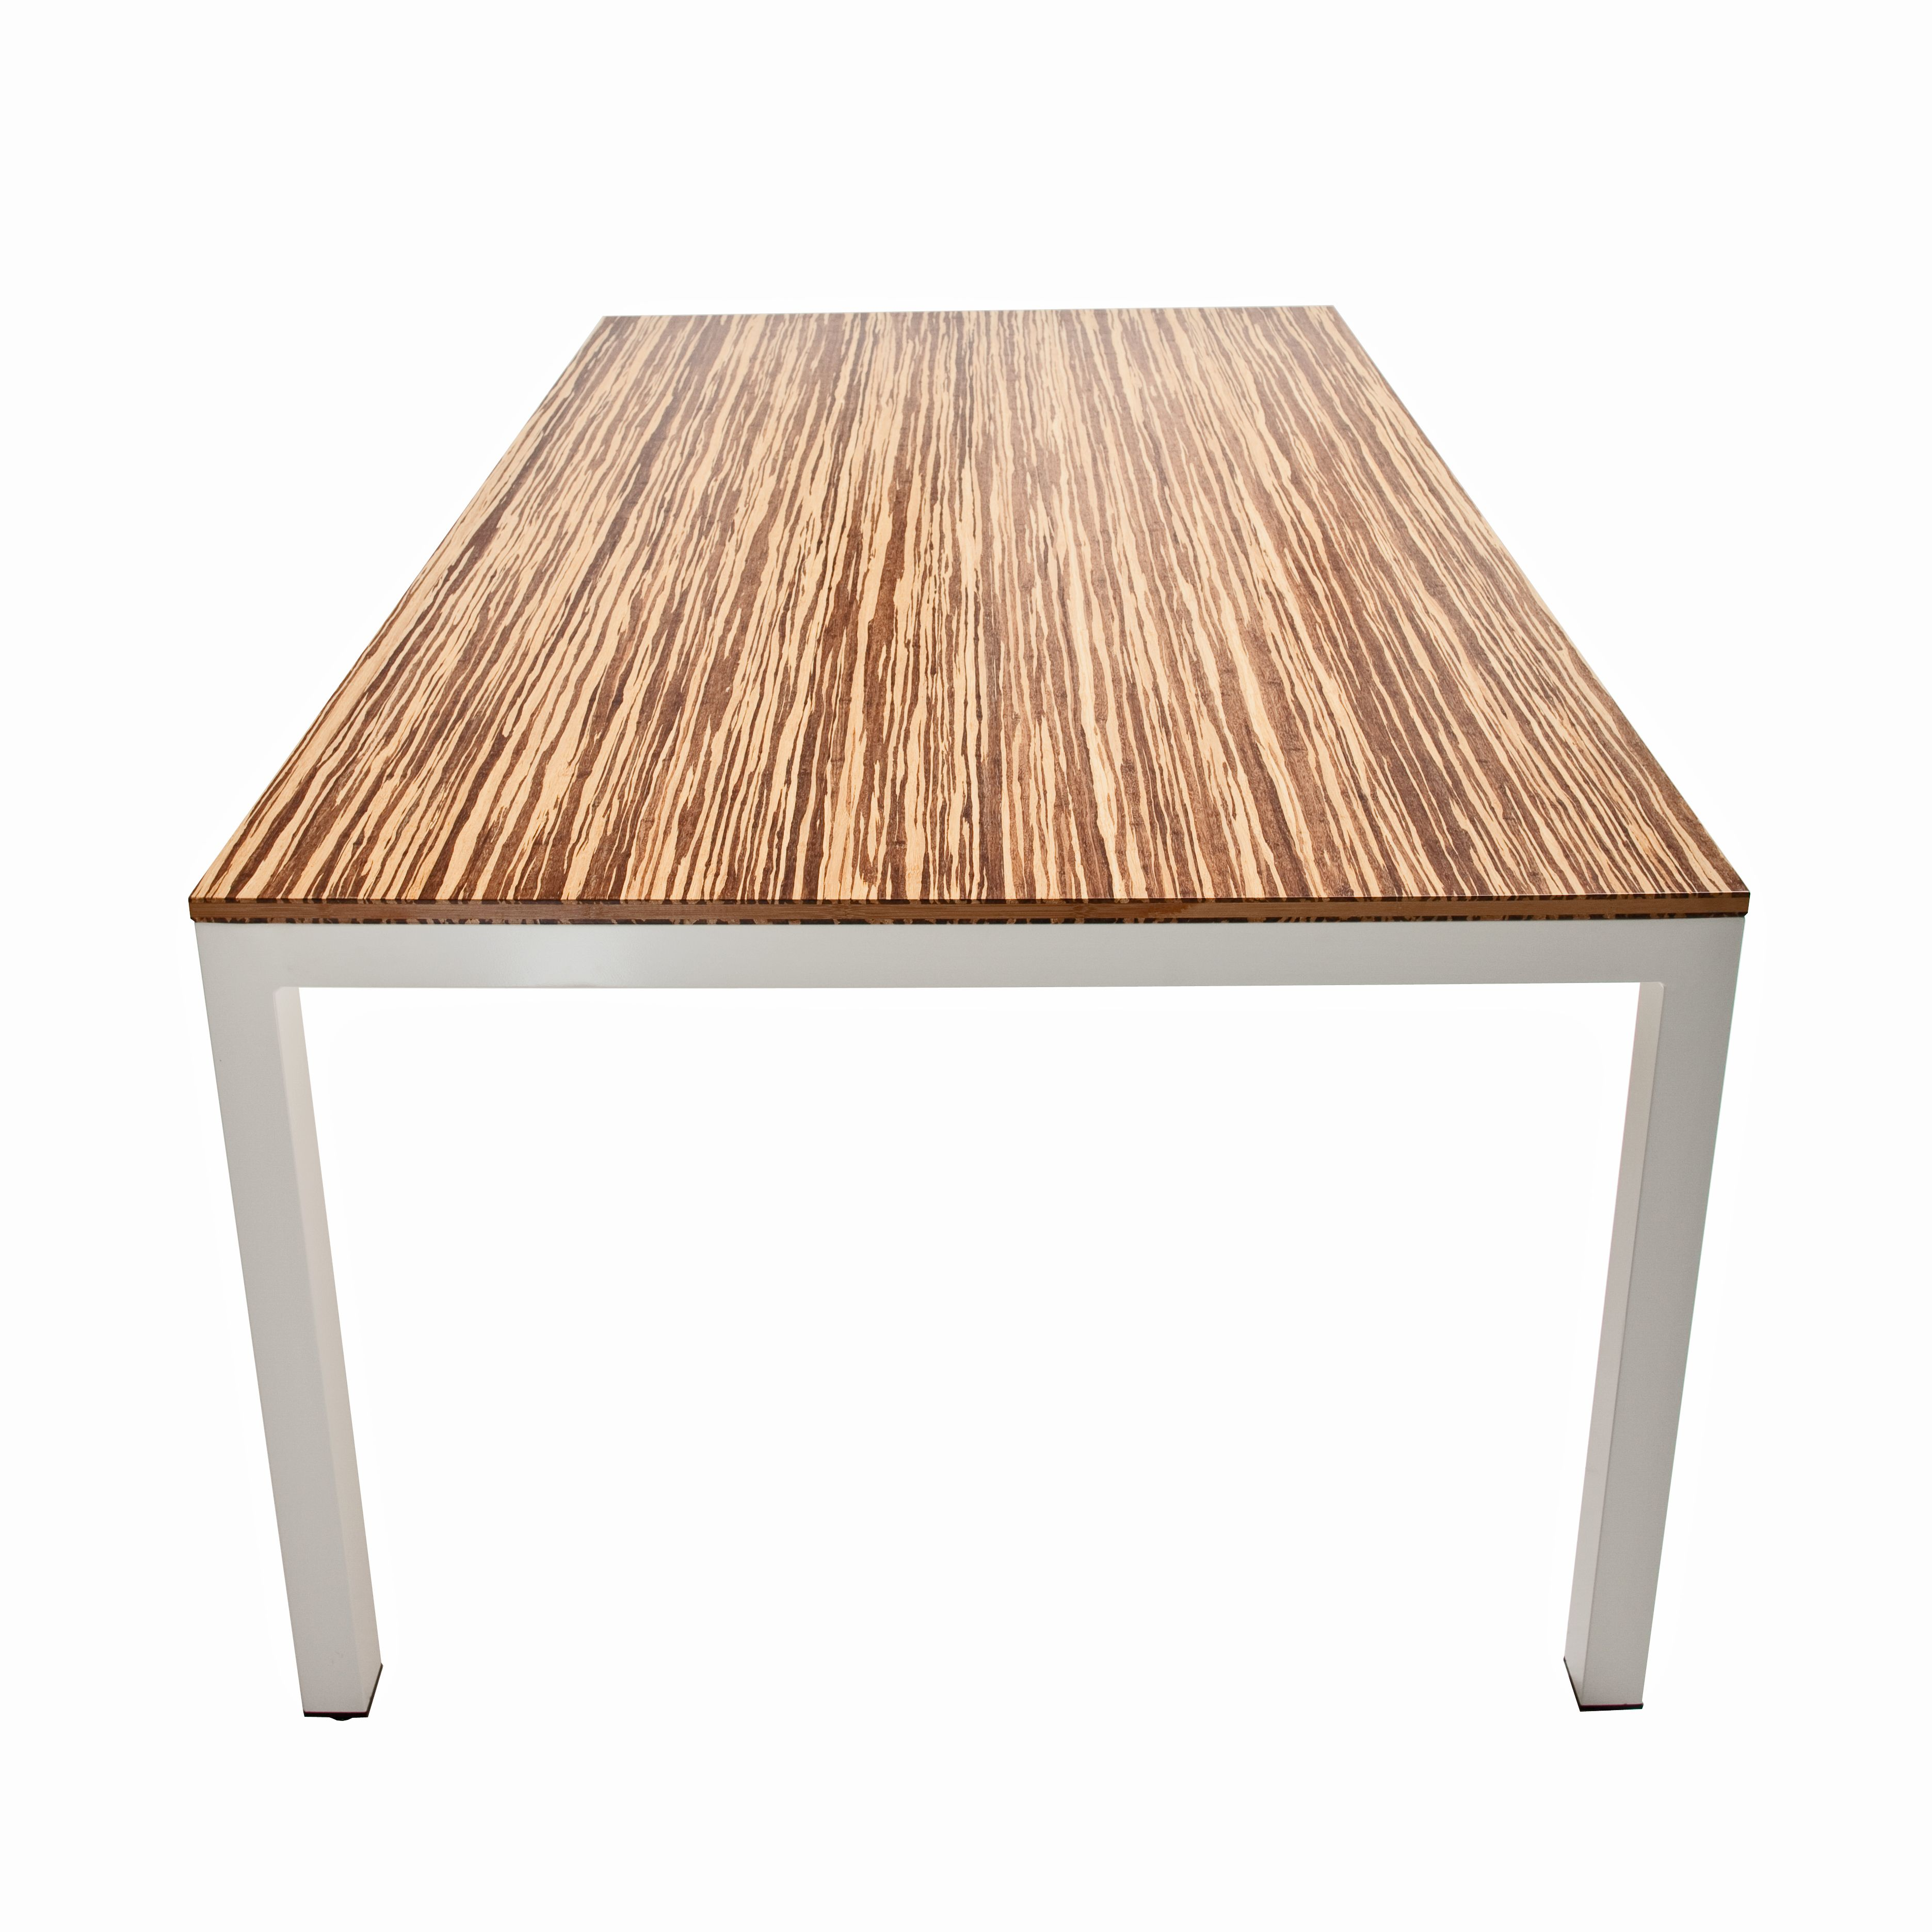 bamboo modern furniture. Sustain Furniture By Responde Www.respondefurnishings.com #sustainable #environmentally Friendly # Bamboo Modern M